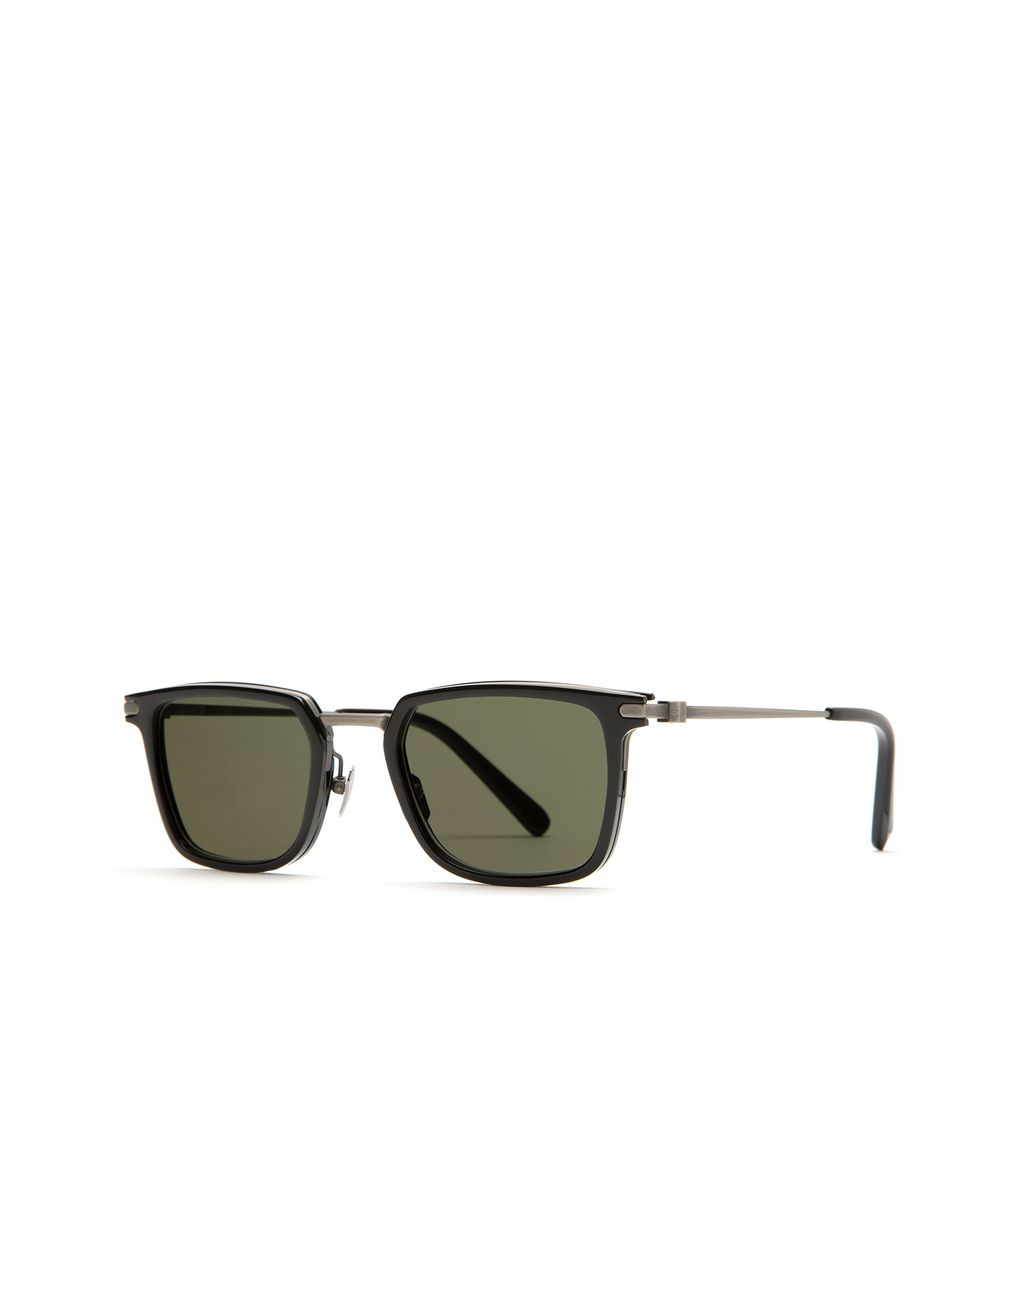 BRIONI Night & Day Shiny Black Retro Square Sunglasses Sunglasses Man r